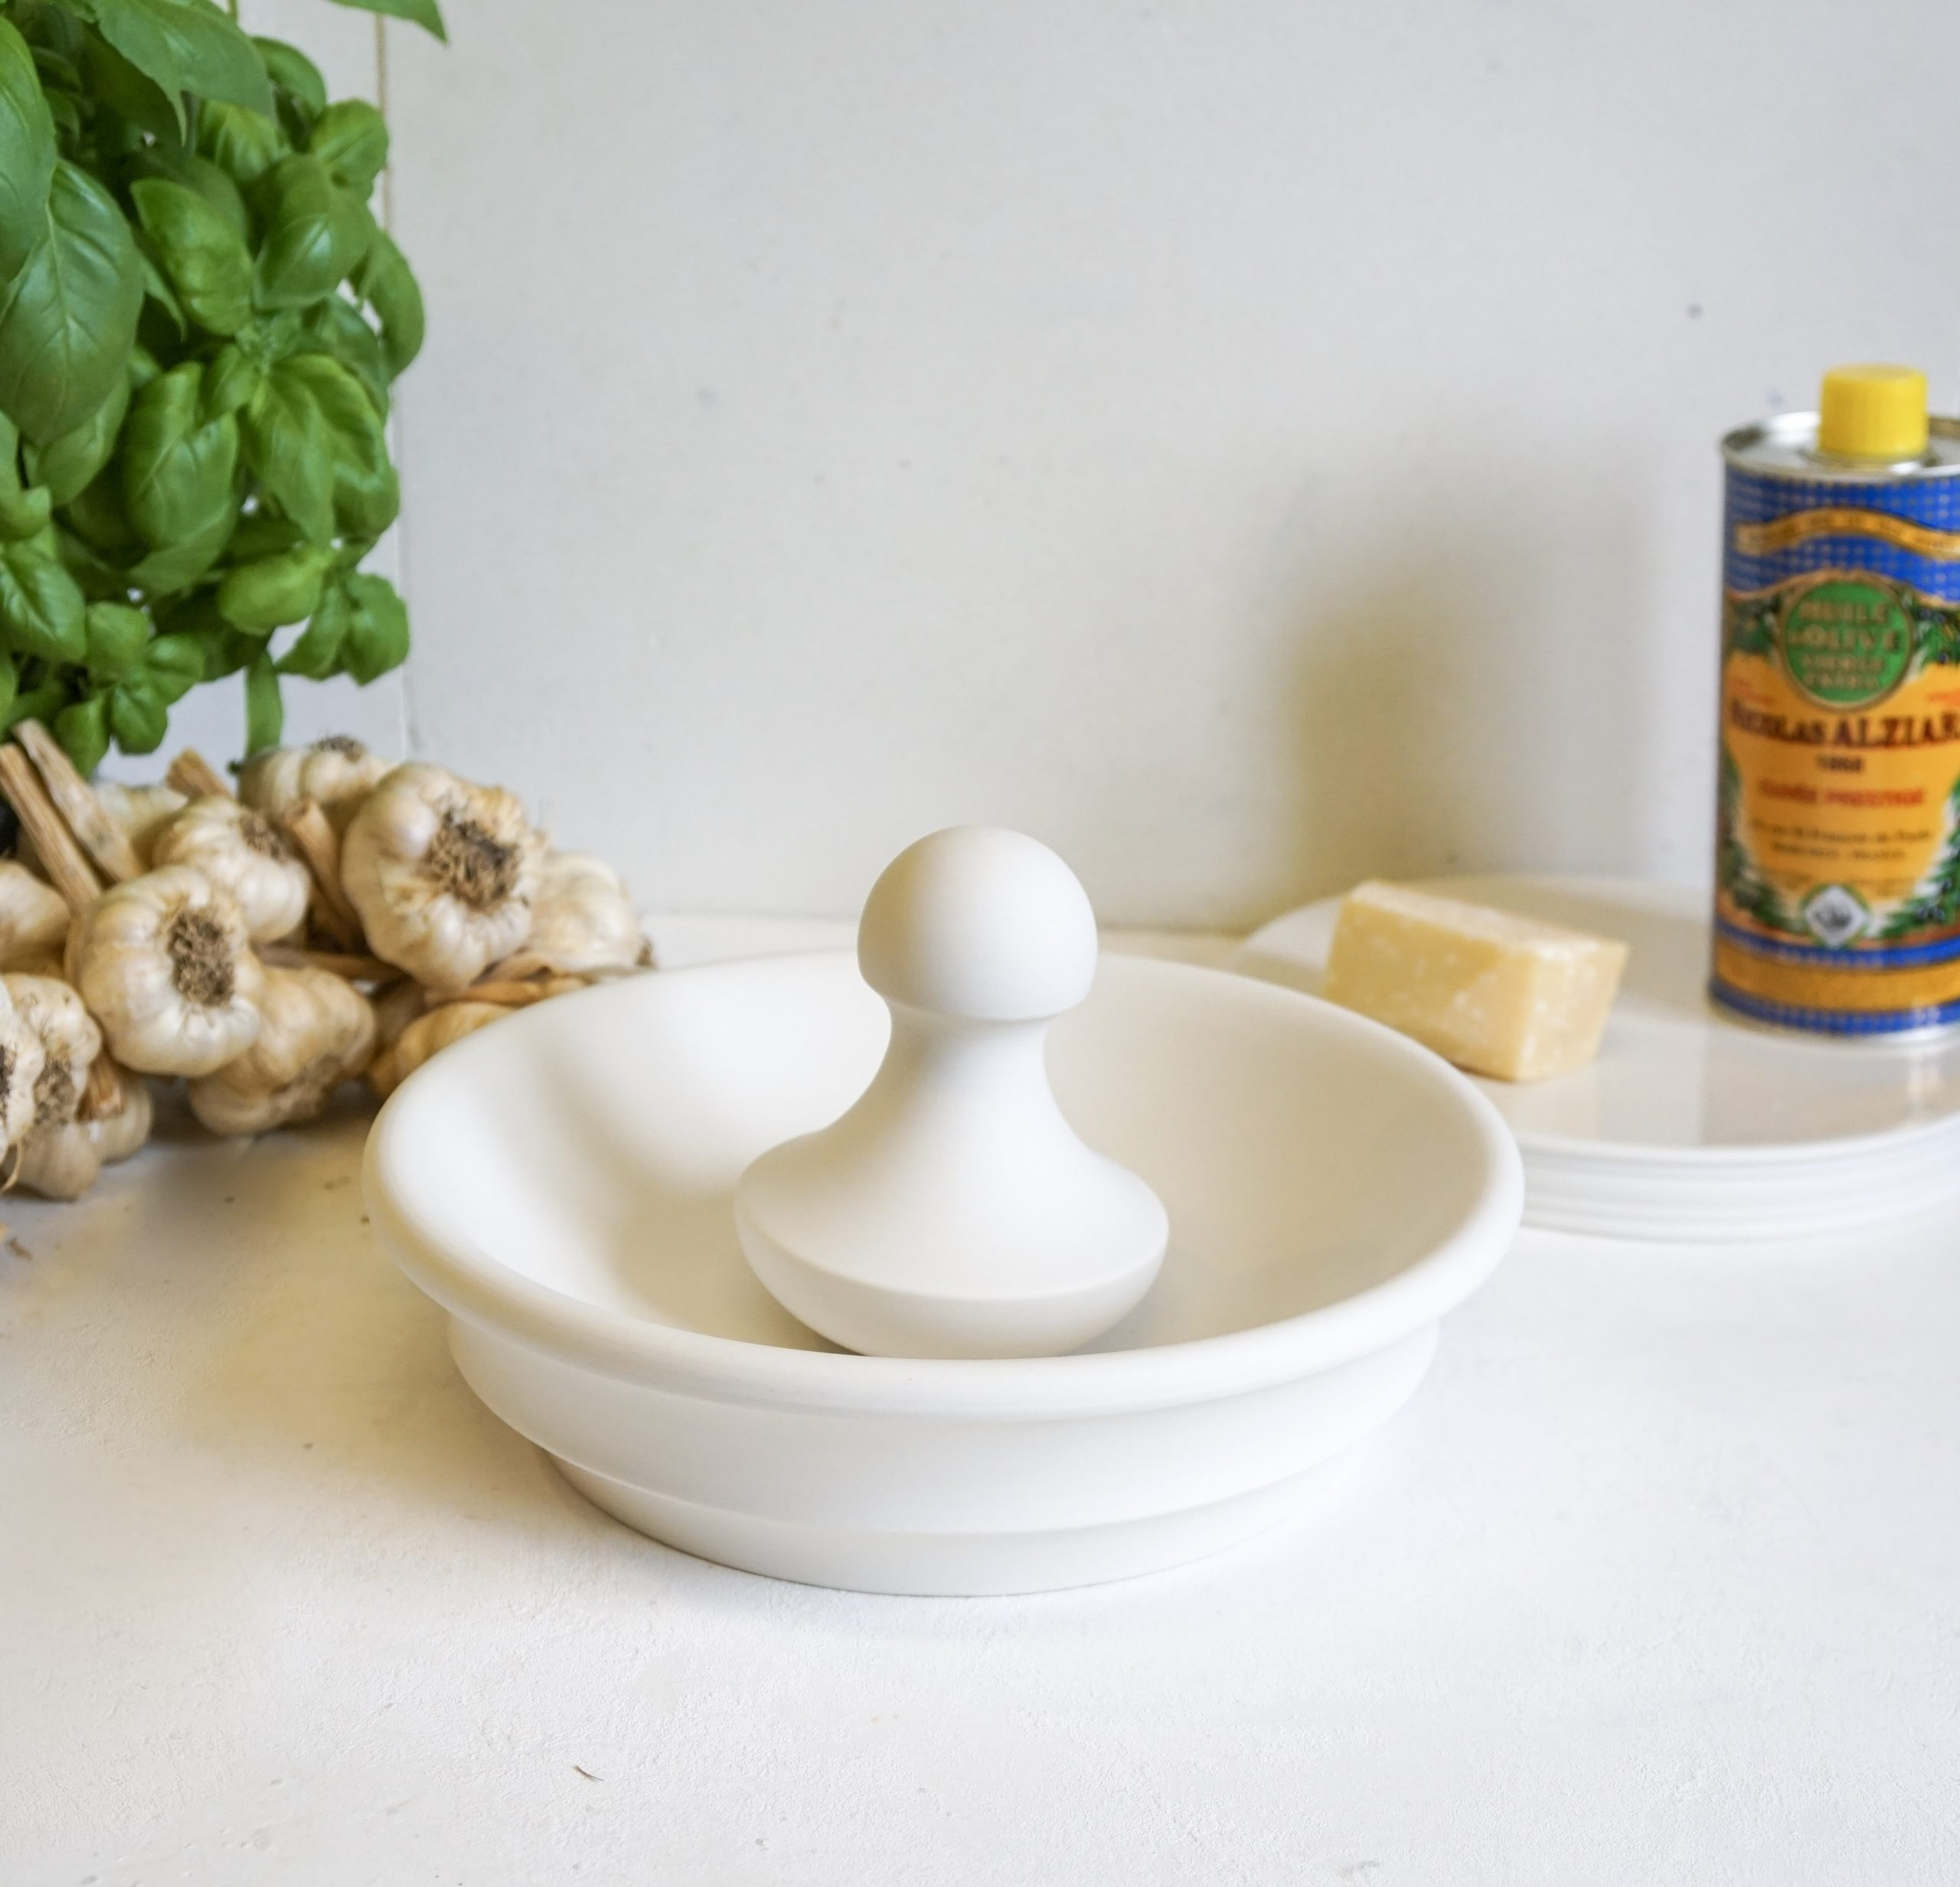 Porcelain Bowl Mortar with Ball Pestle perfect for pesto making